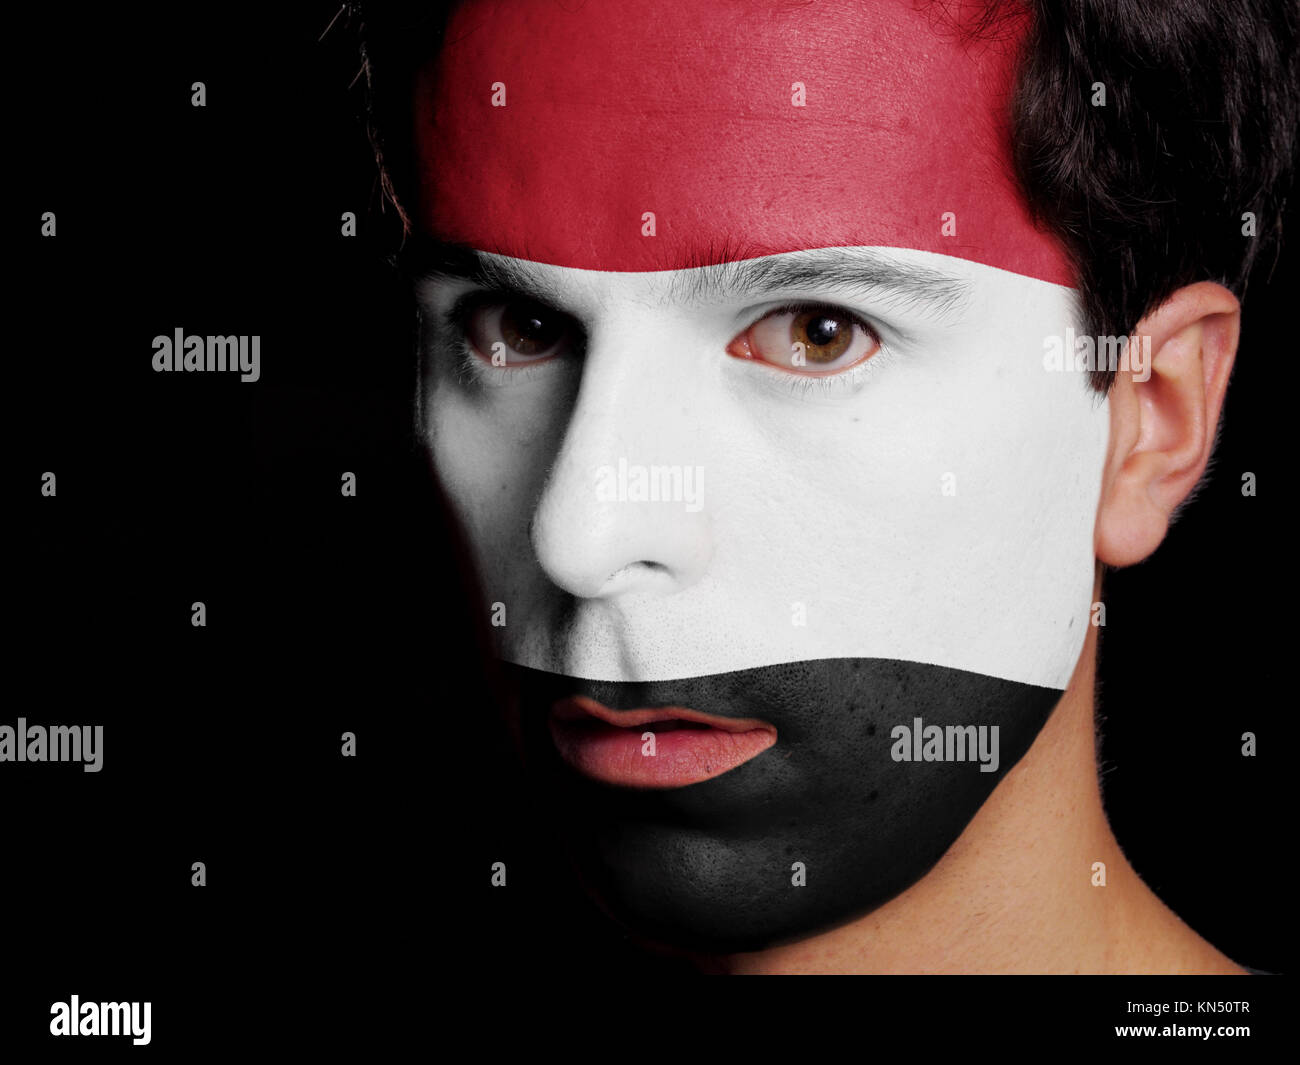 Flag of Yemen Painted on a Face of a Young Man. - Stock Image